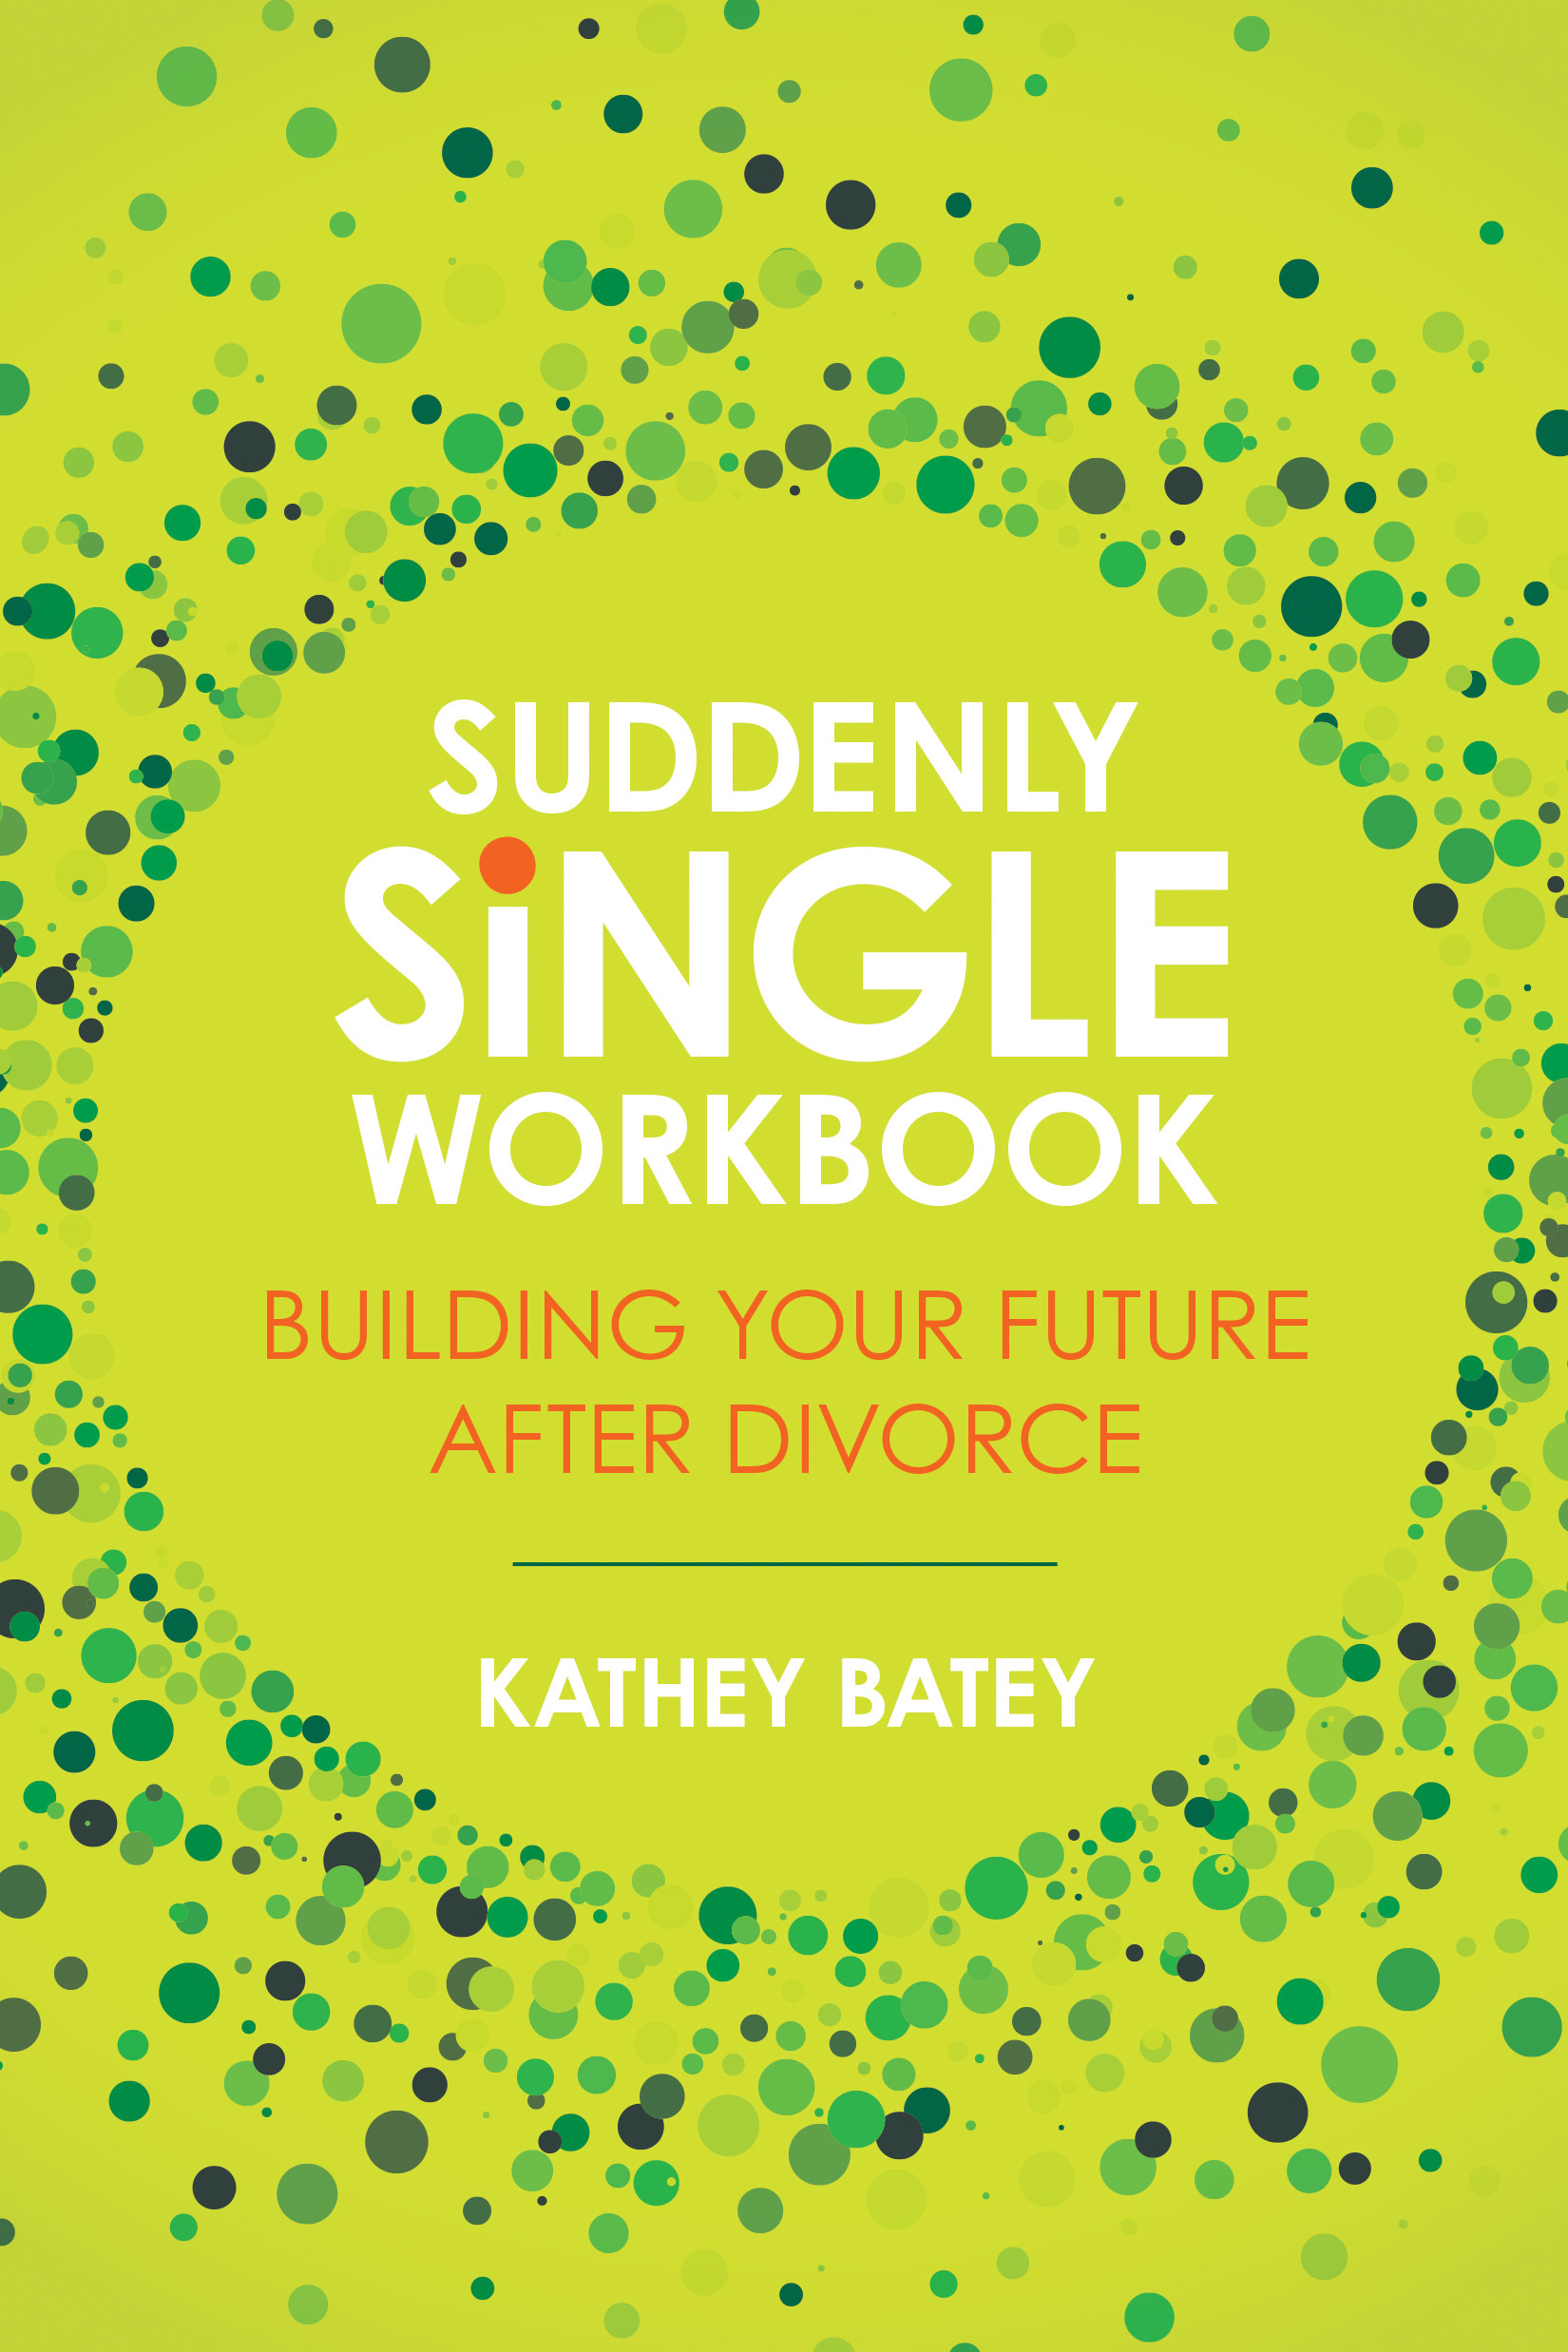 Suddenly Single Workbook Building Your Future after Divorce